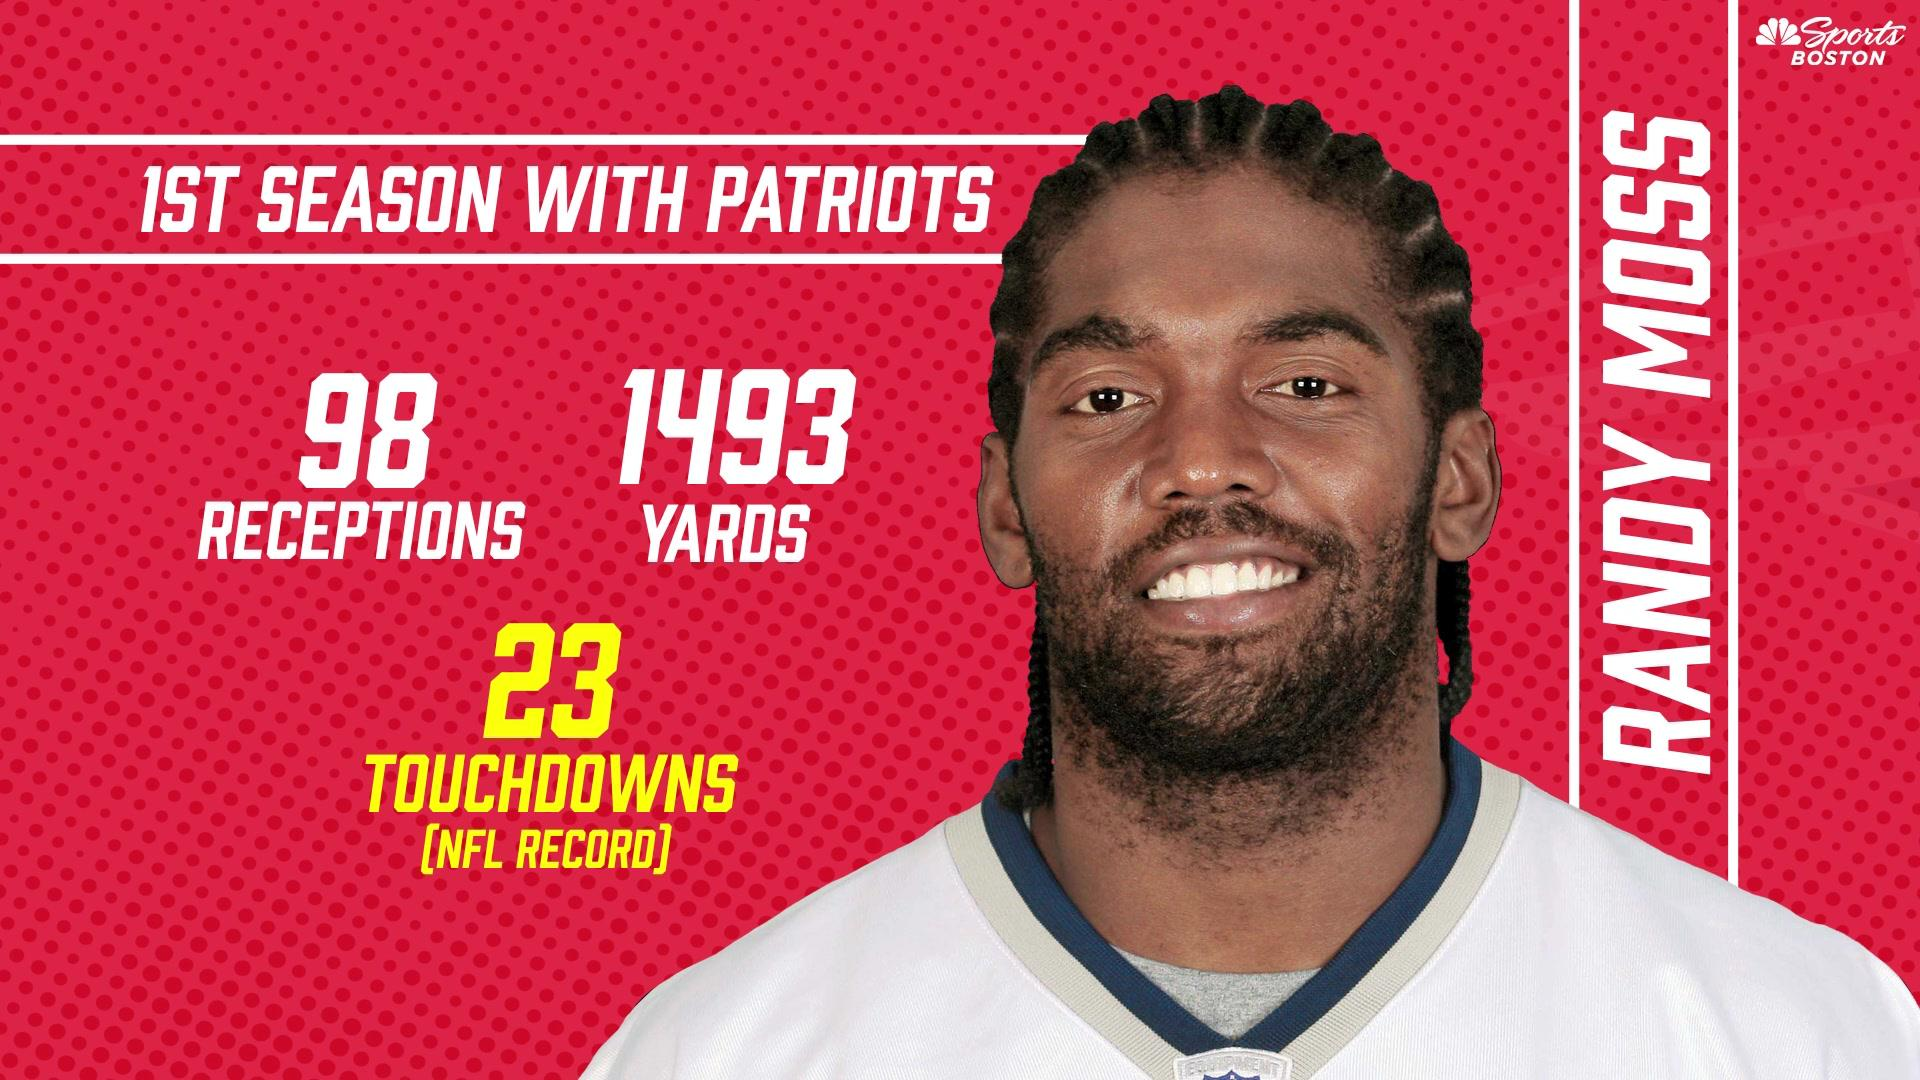 How will Antonio Brown compare to Randy Moss' season back in 2007?